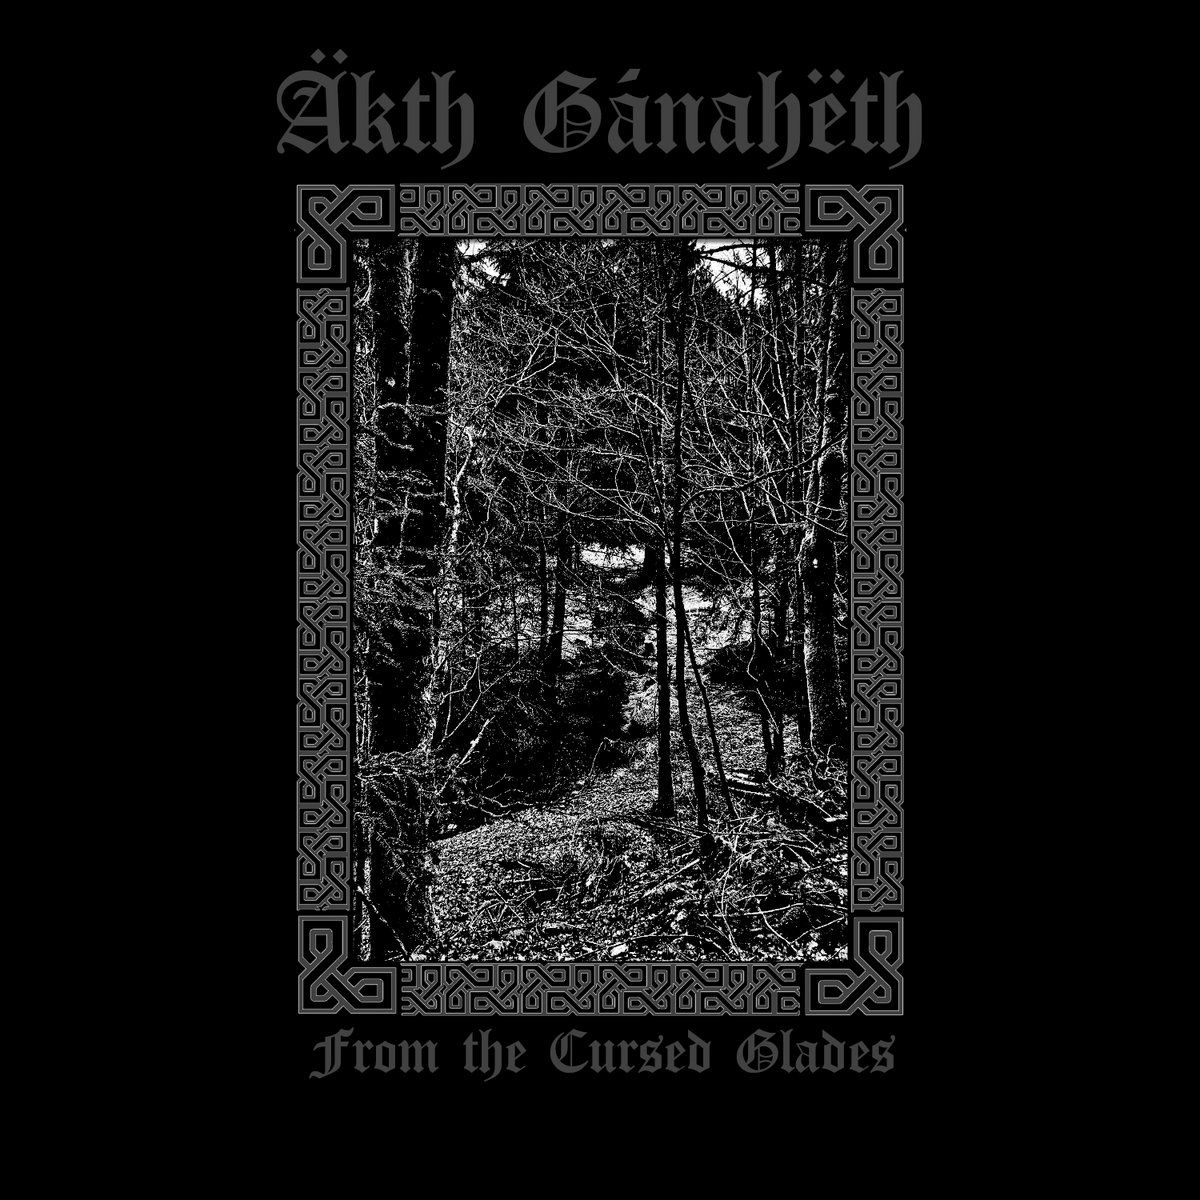 Review for Äkth Gánahëth - From the Cursed Glades